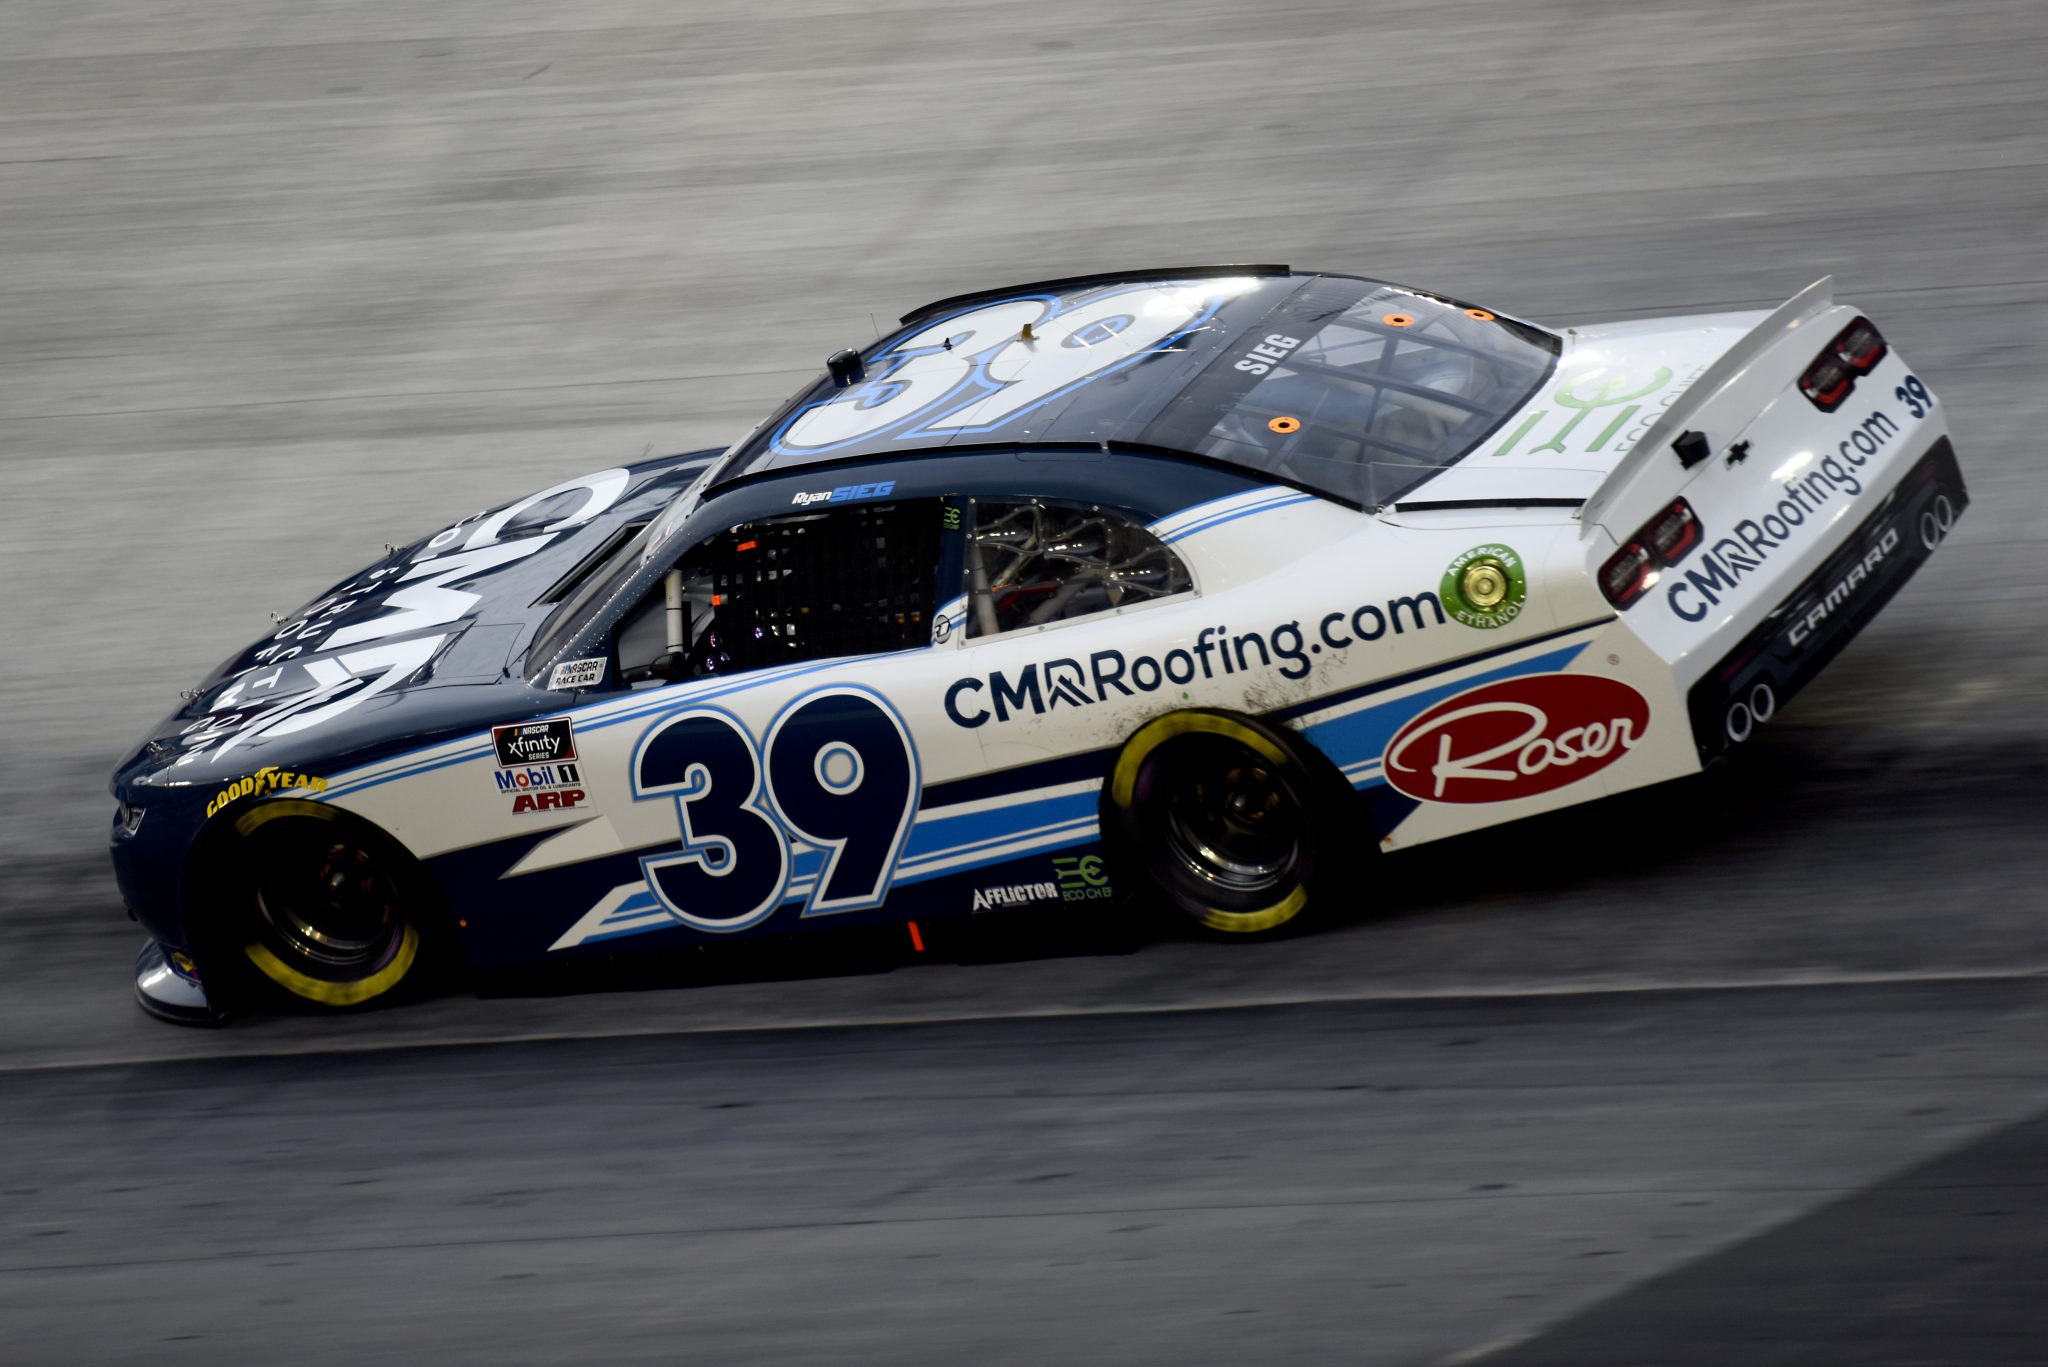 BRISTOL, TENNESSEE - SEPTEMBER 18: Ryan Sieg, driver of the #39 CMRRoofing.com Chevrolet, drives during the NASCAR Xfinity Series Food City 300 at Bristol Motor Speedway on September 18, 2020 in Bristol, Tennessee. (Photo by Jared C. Tilton/Getty Images) | Getty Images